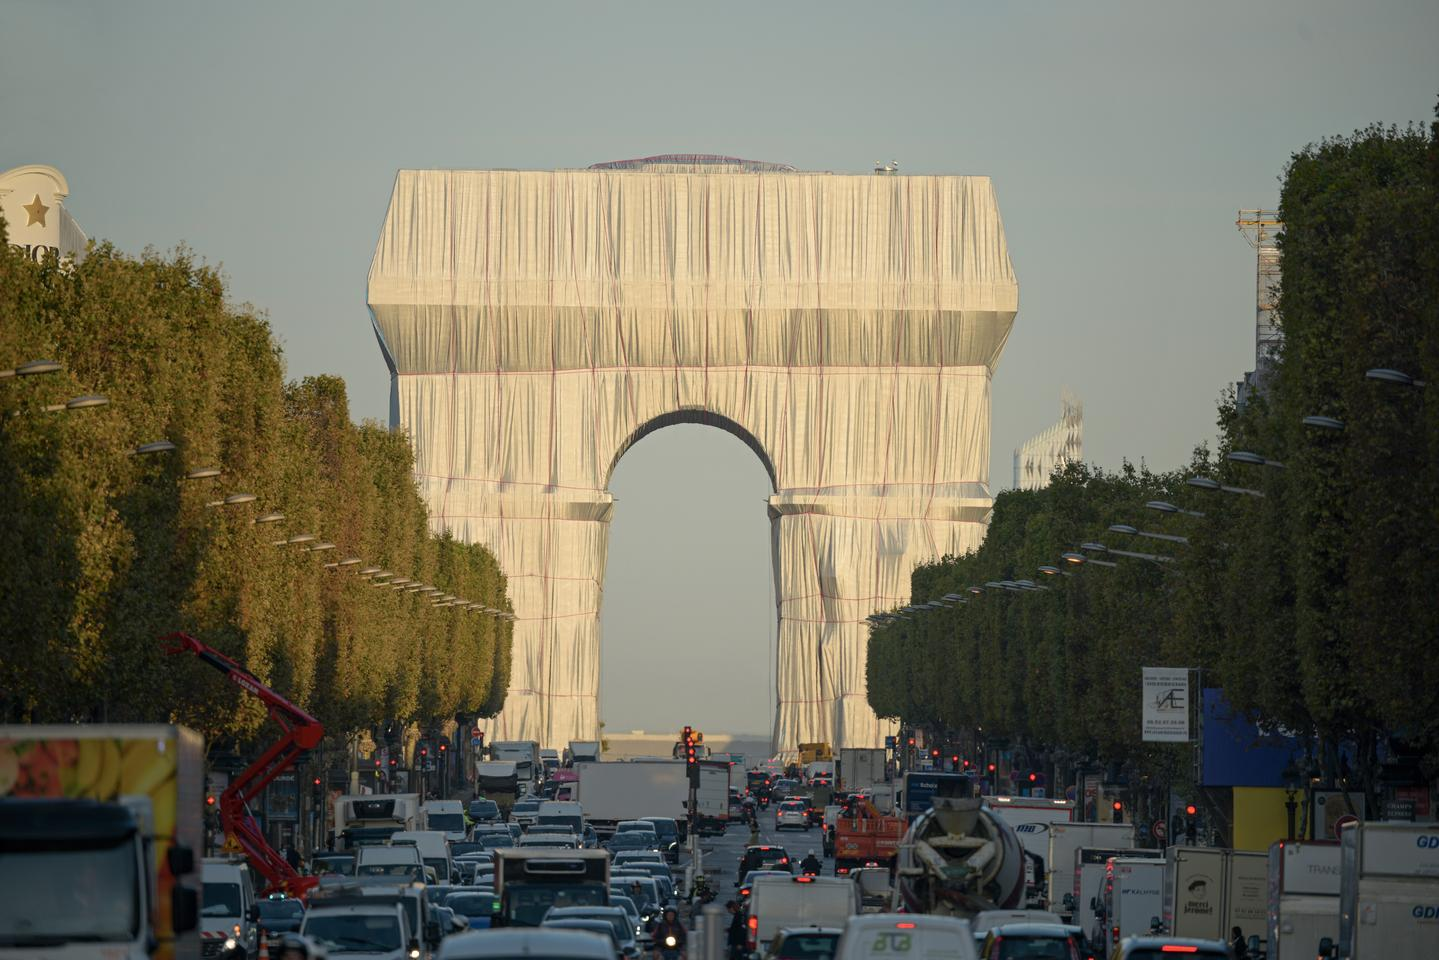 L'Arc de Triomphe, Wrapped is open from Saturday, September 18 to Sunday, October 3, 2021